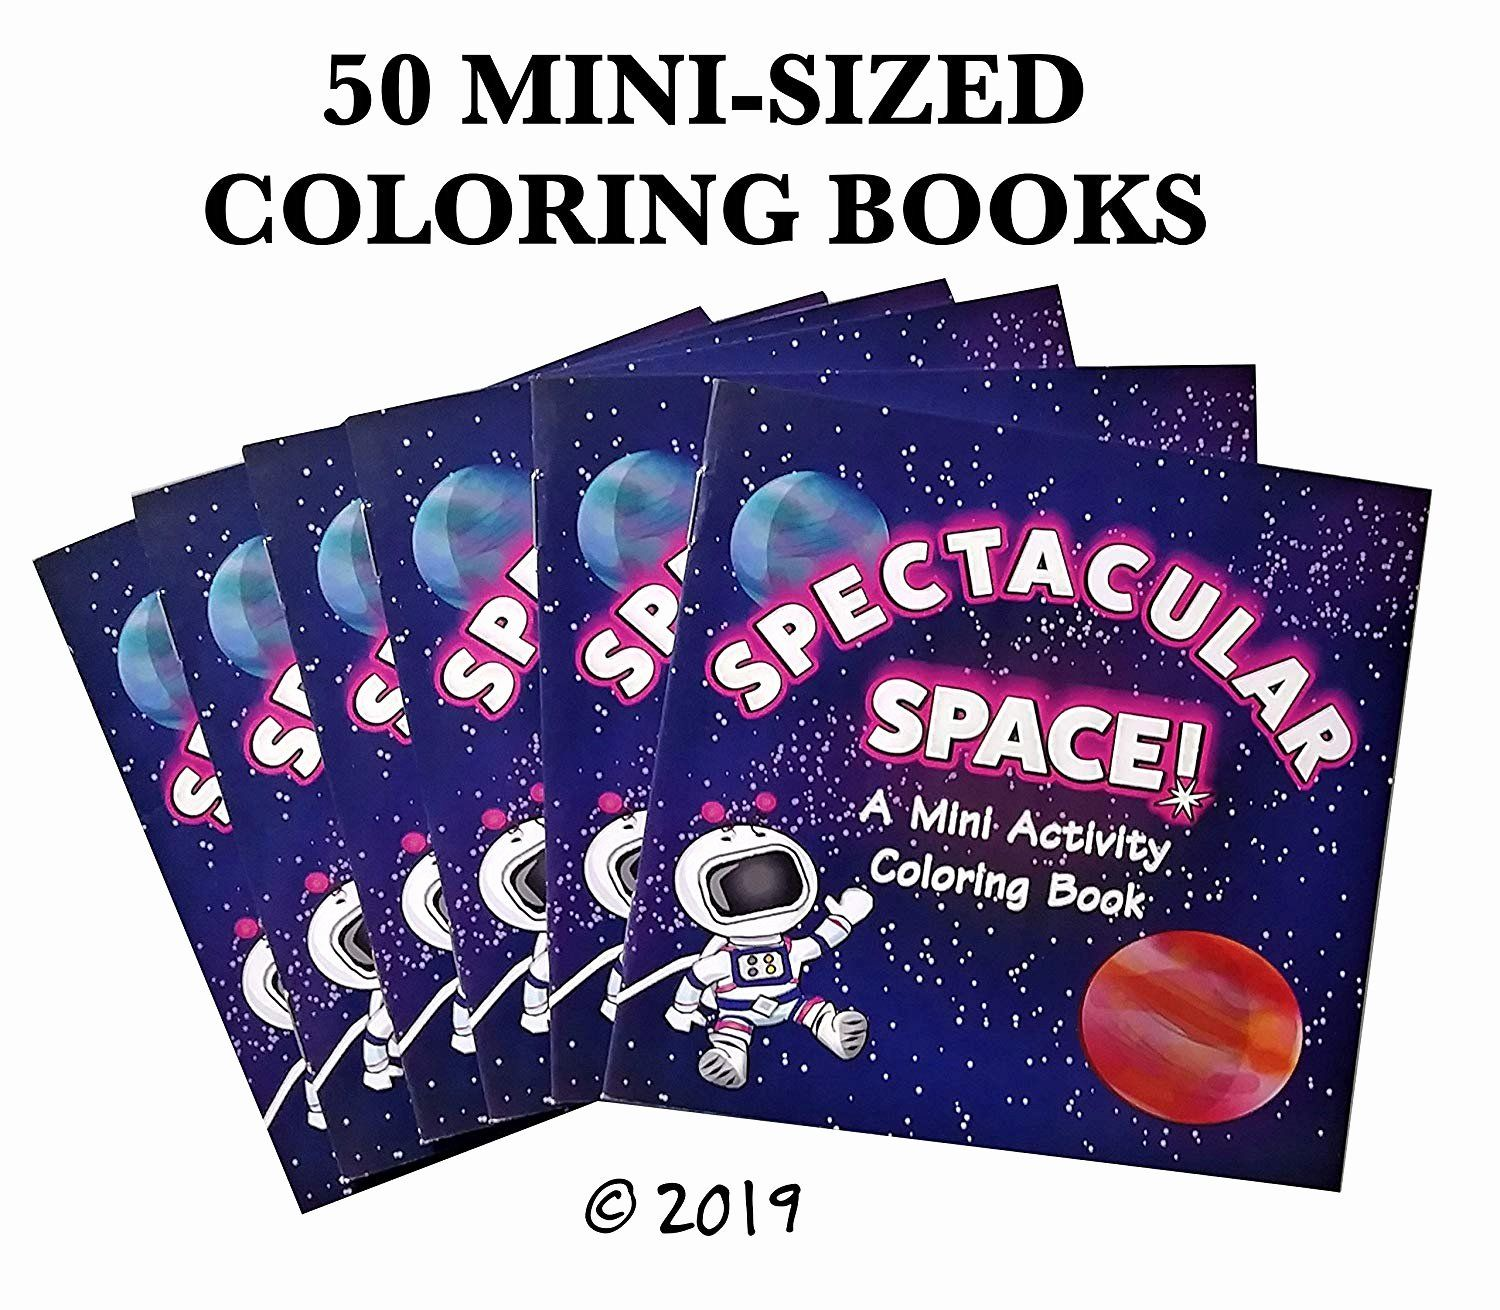 Ice Cream Coloring Book Best Of 50 Pack 4 75 X 4 75 Mini Sized Space Coloring Books In Bulk Outer Space Party Favors Coloring Books Outer Space Party Favors